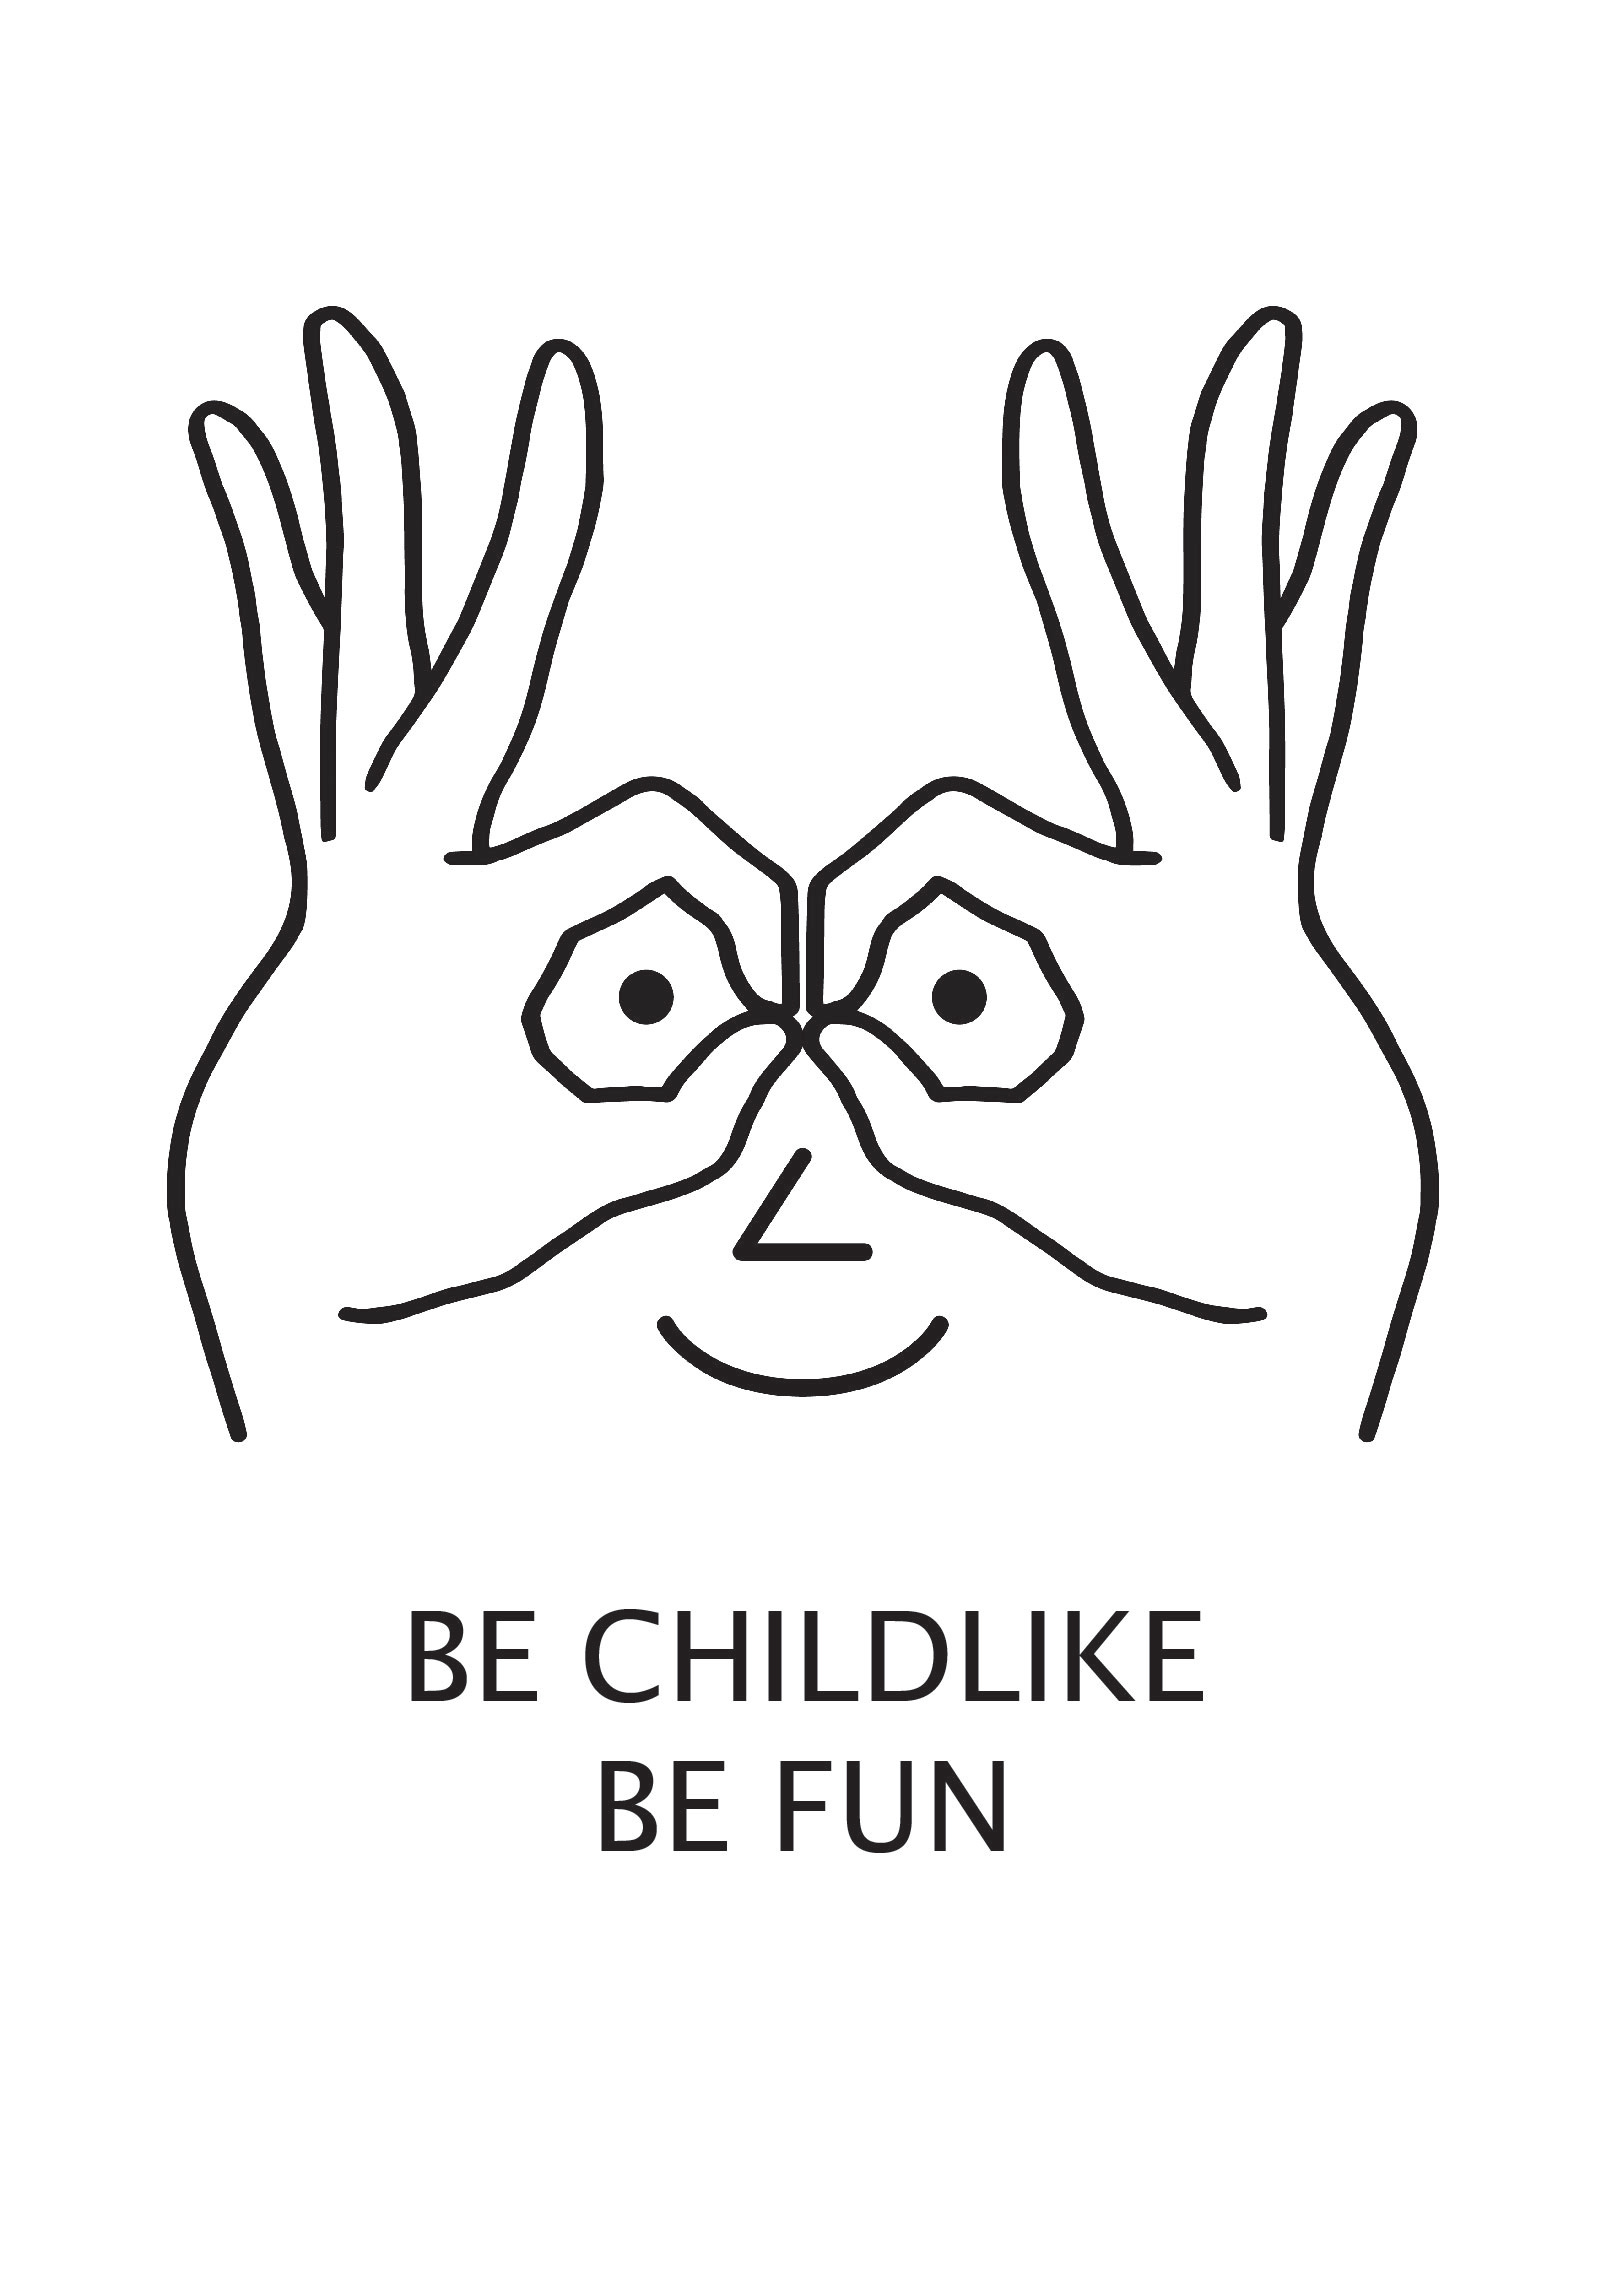 be childlike be fun